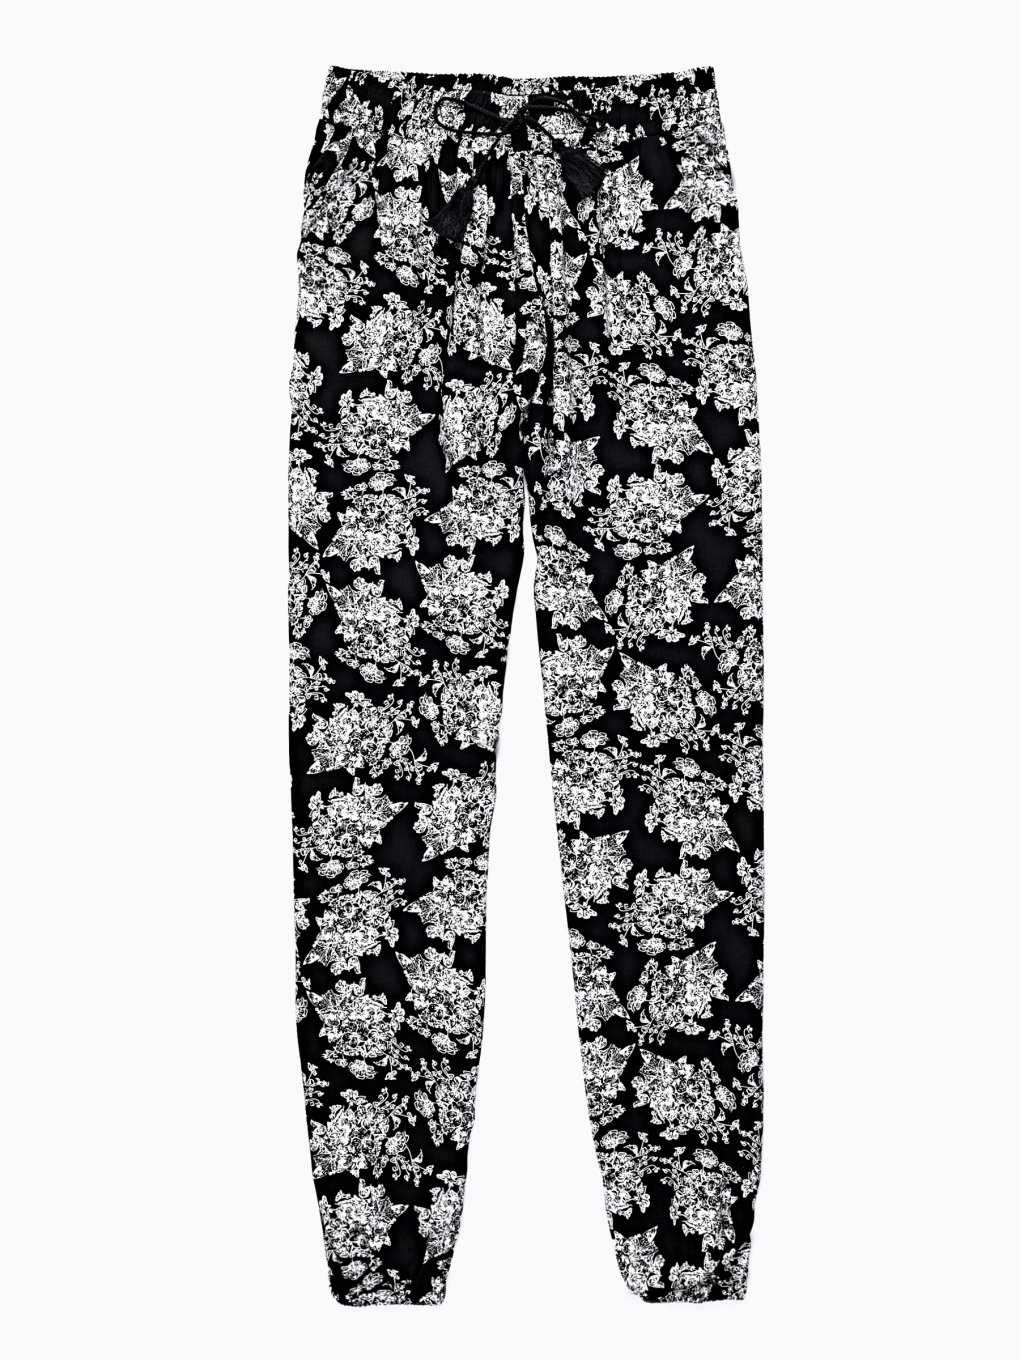 PRINTED VISCOSE TROUSERS